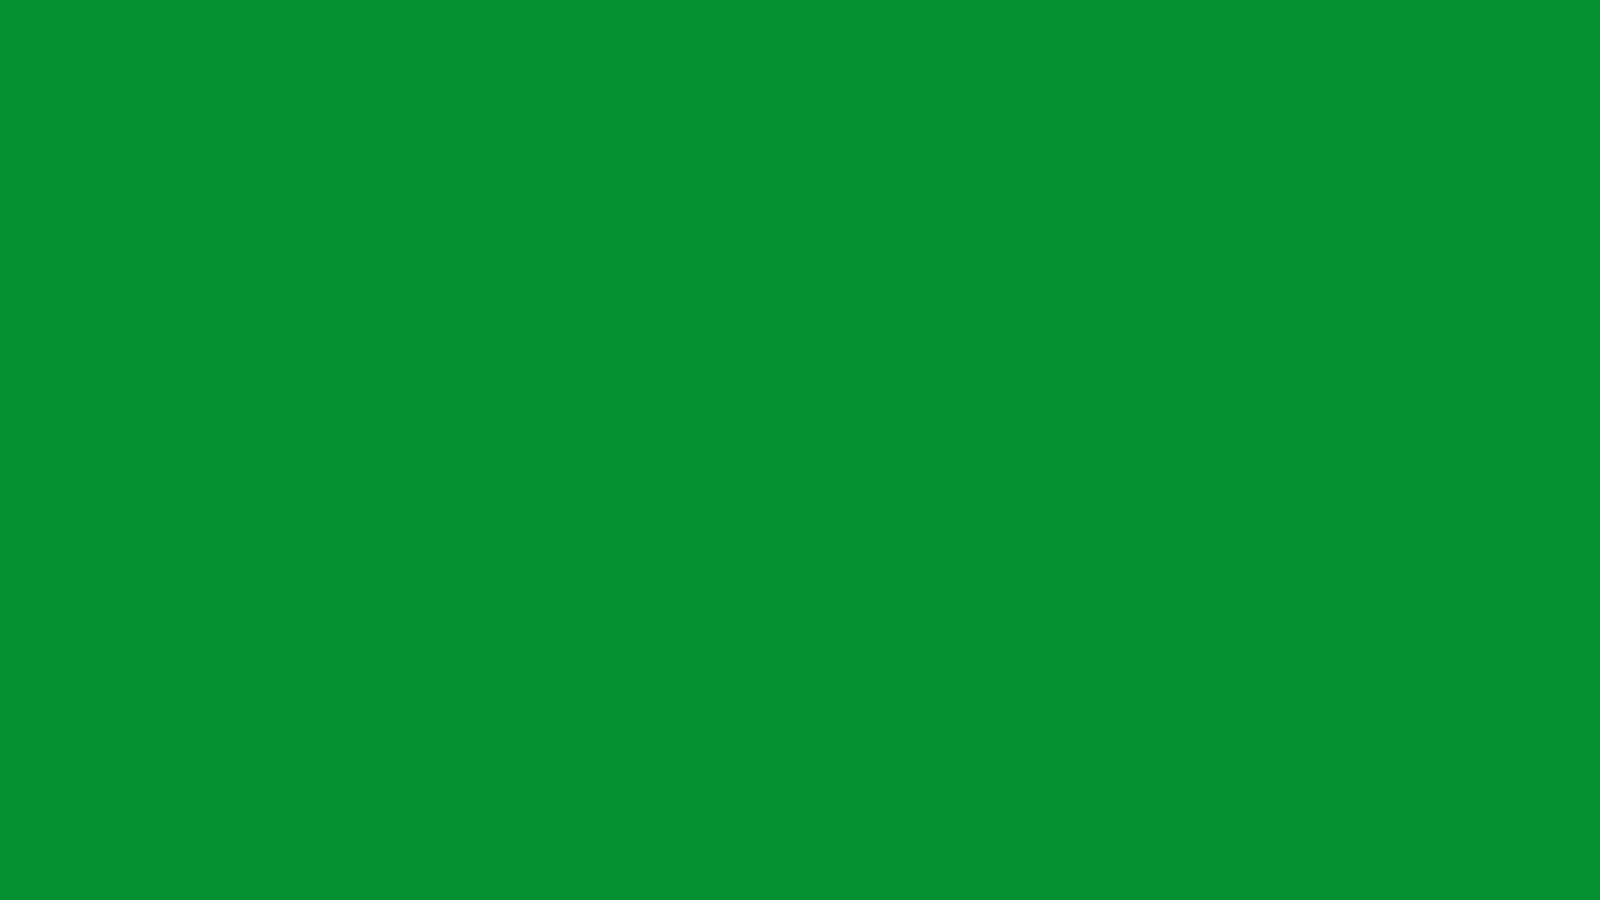 1600x900 North Texas Green Solid Color Background